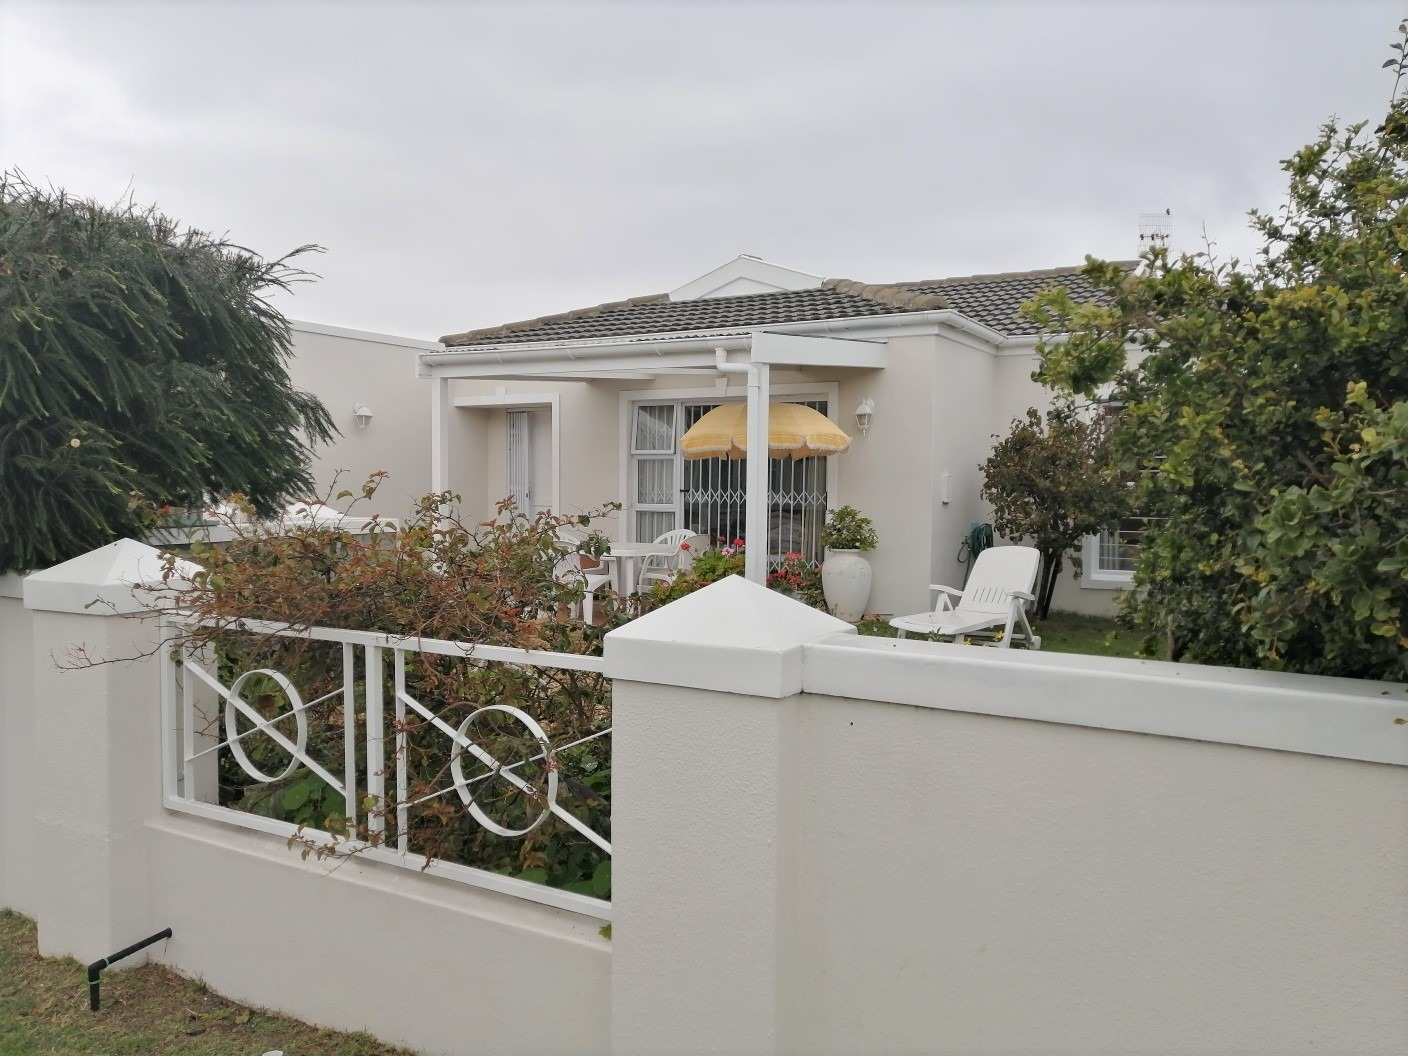 2 Bedroom House For Sale in Sunningdale